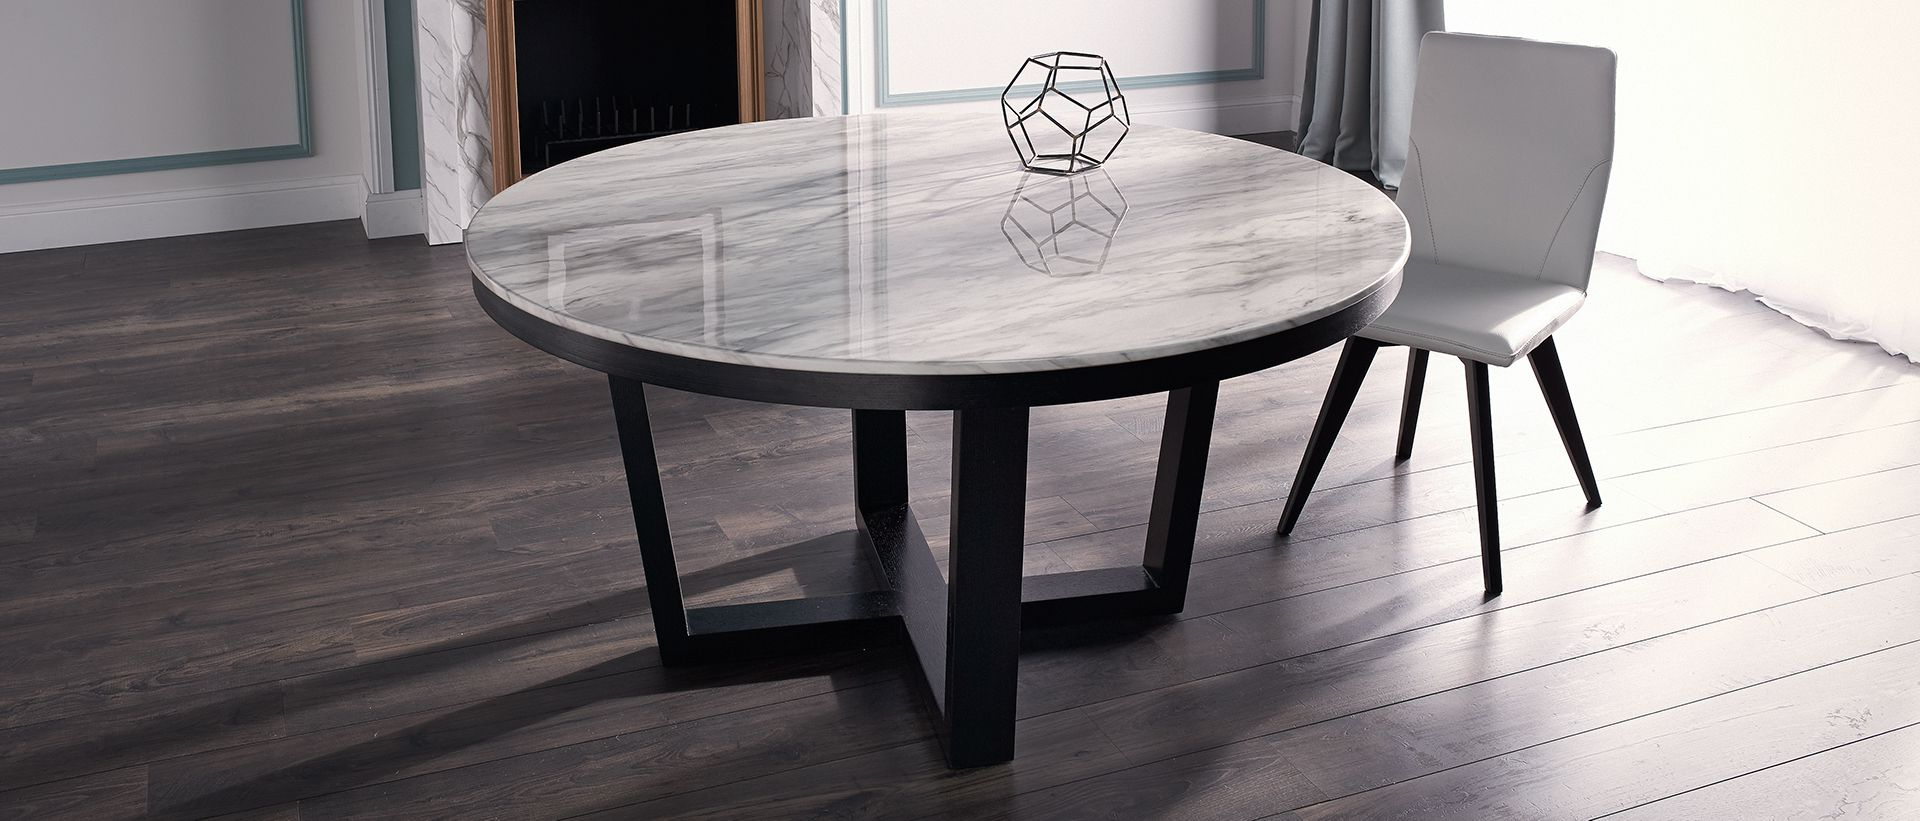 2020 Dining Tables